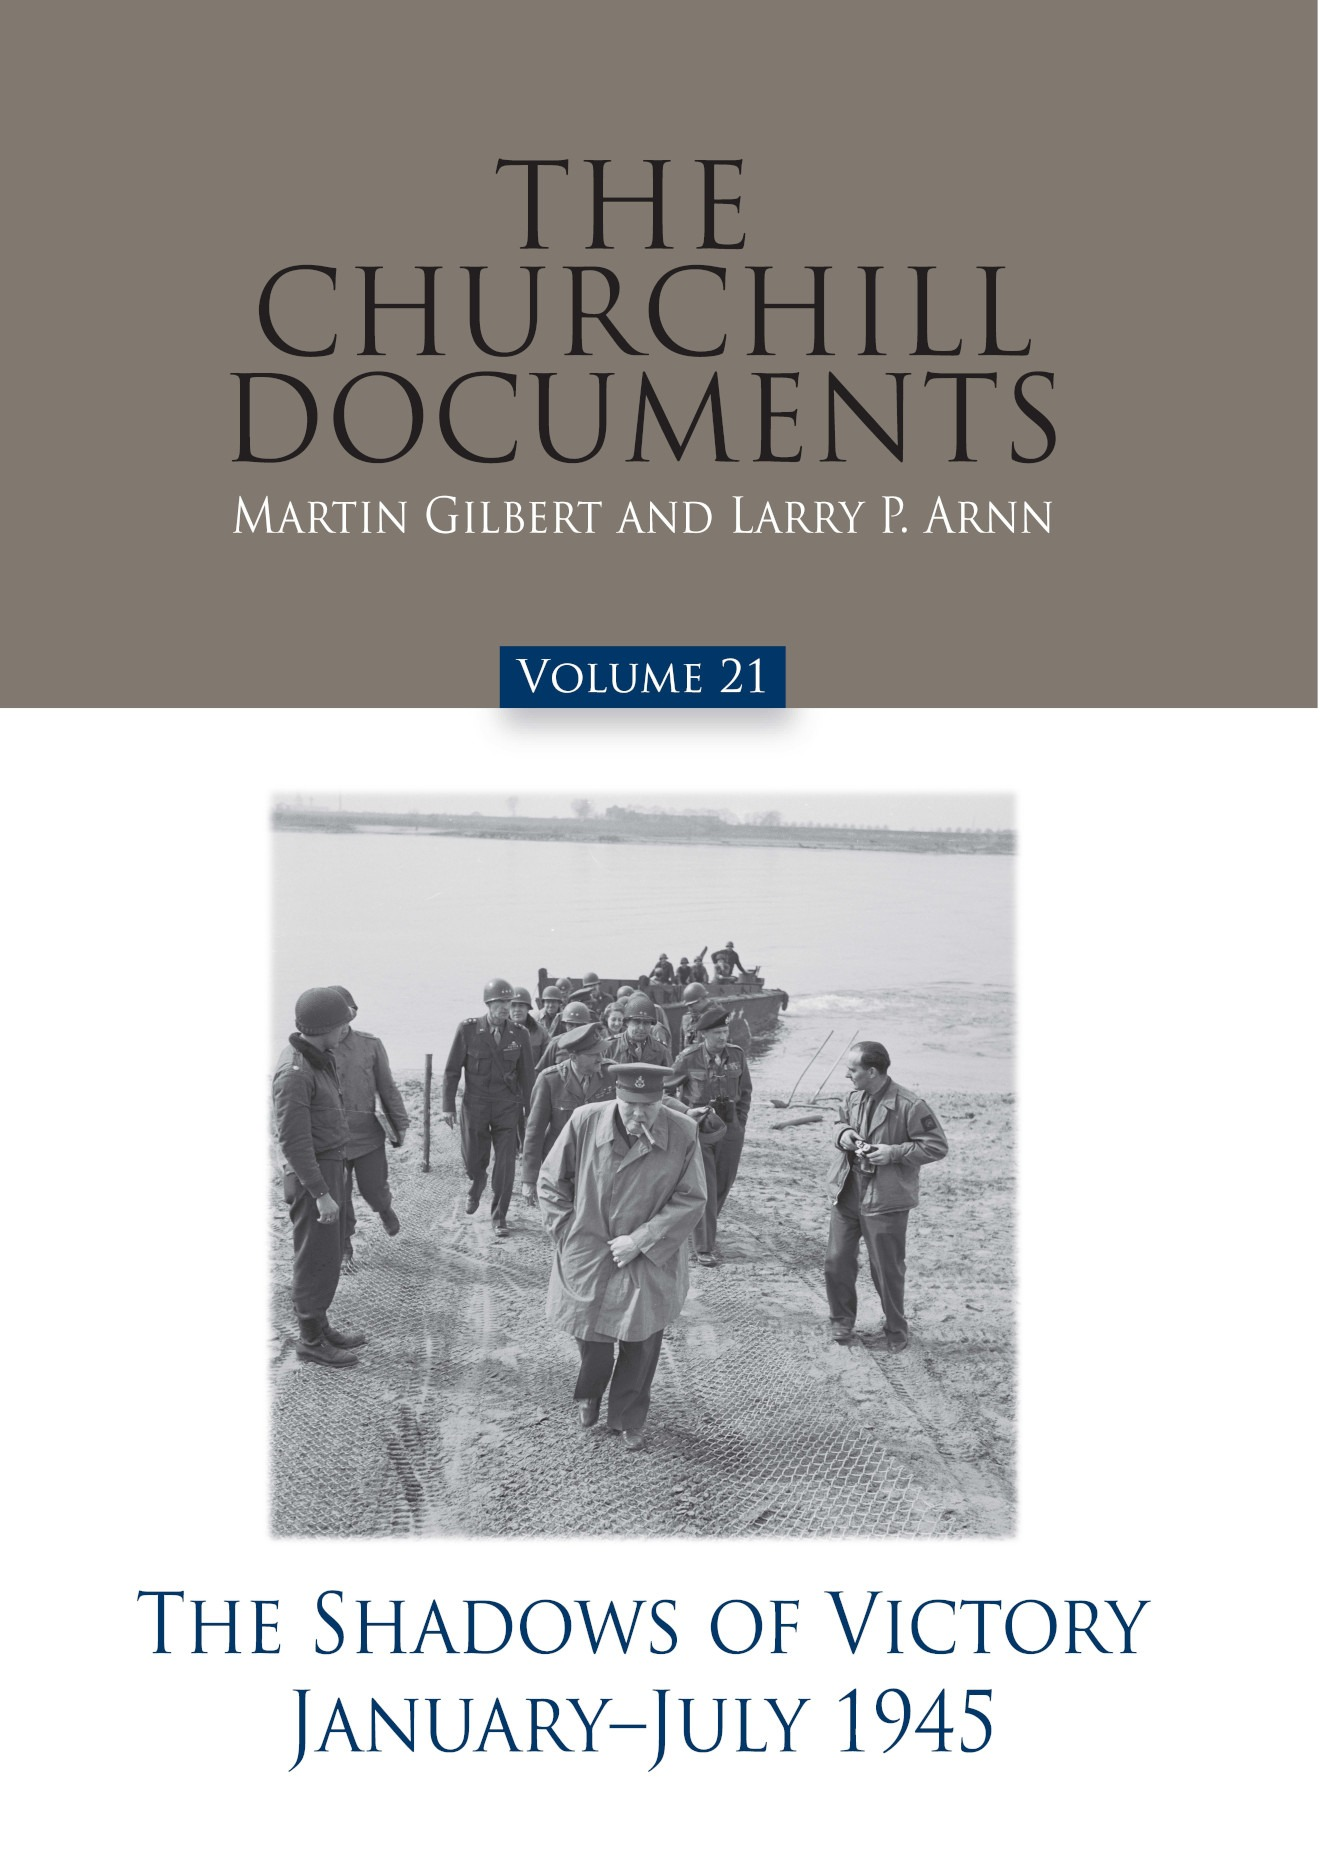 Churchill Documents Vol. 21